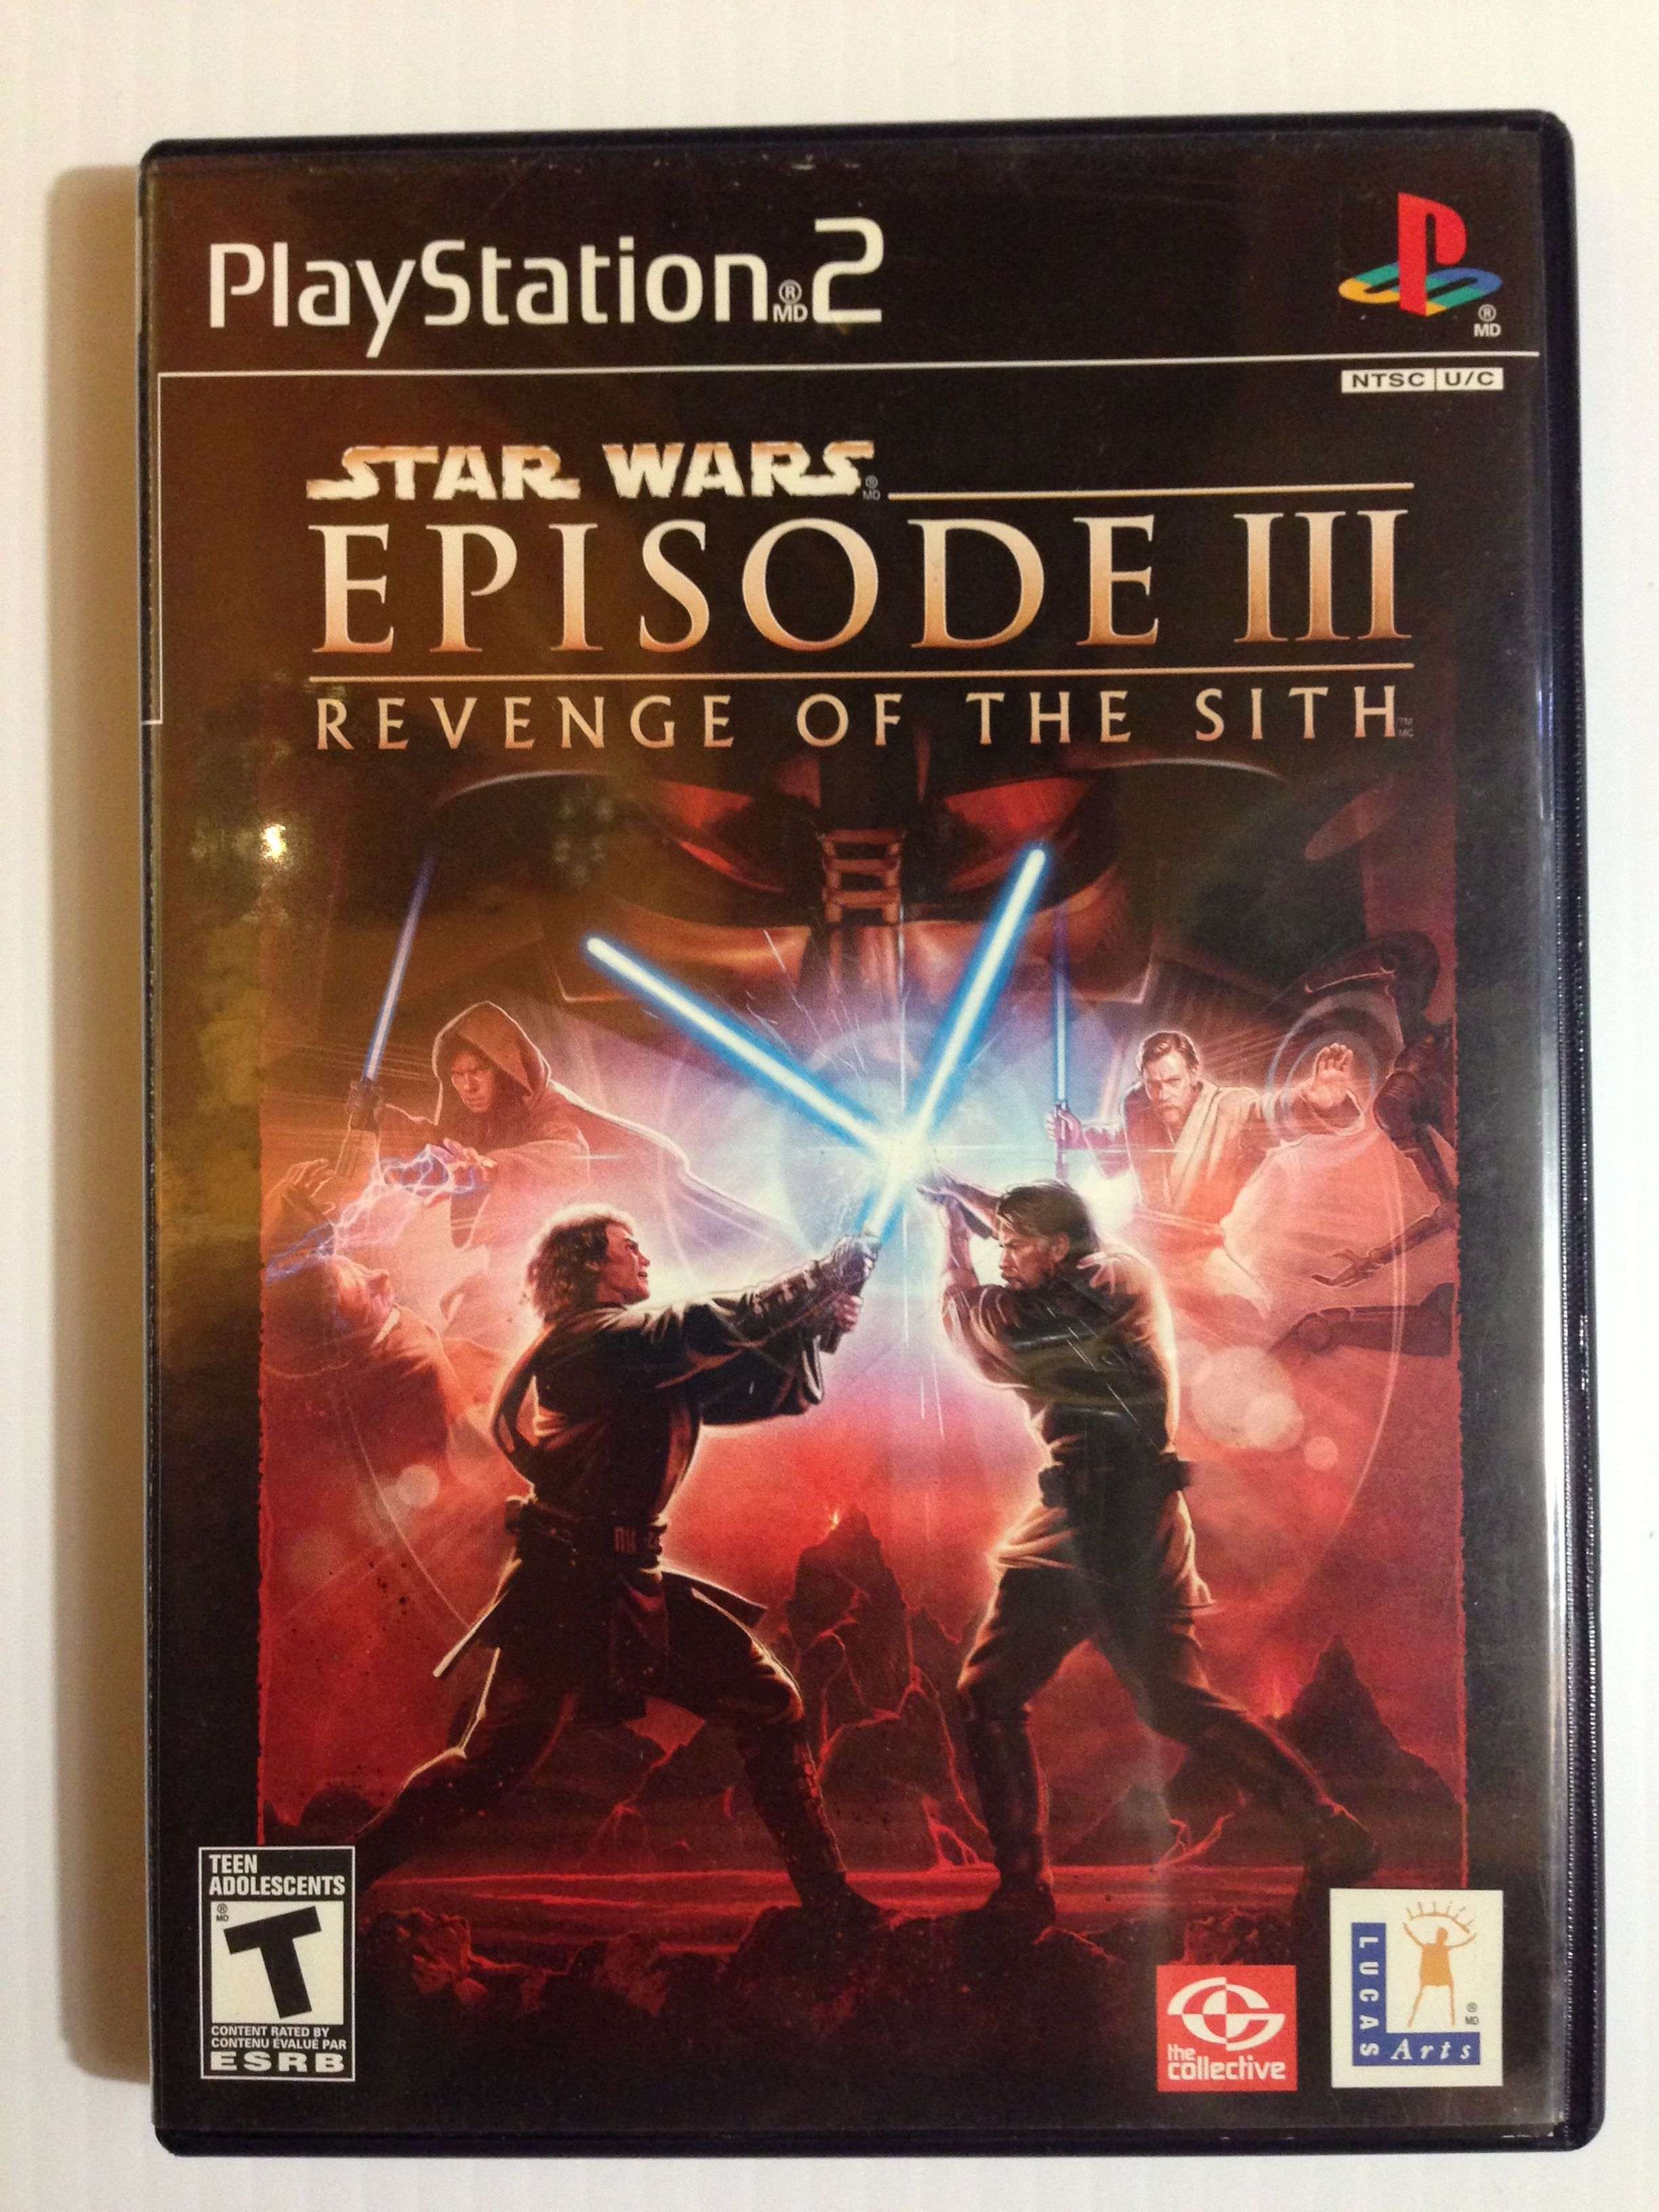 Star Wars Episode Iii Revenge Of The Sith Star Wars Episodes Star War Episode 3 Star Wars Games